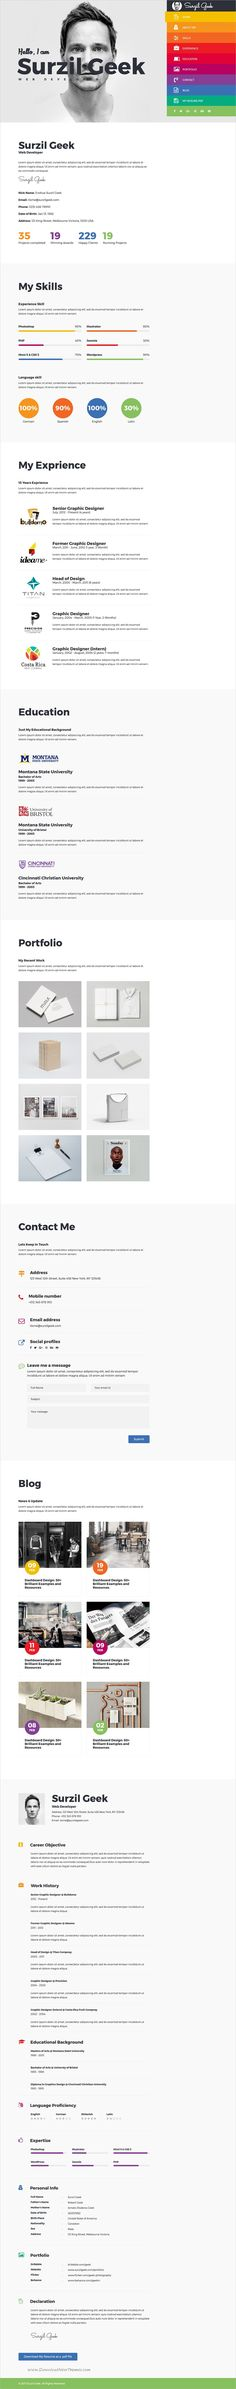 Geek is a clean and modern design responsive HTML #bootstrap template for perfect #CV, resume and #portfolio showcase download now➩ https://wrapbootstrap.com/theme/geek-resume-portfolio-template-WB0NR38X1?ref=datasata